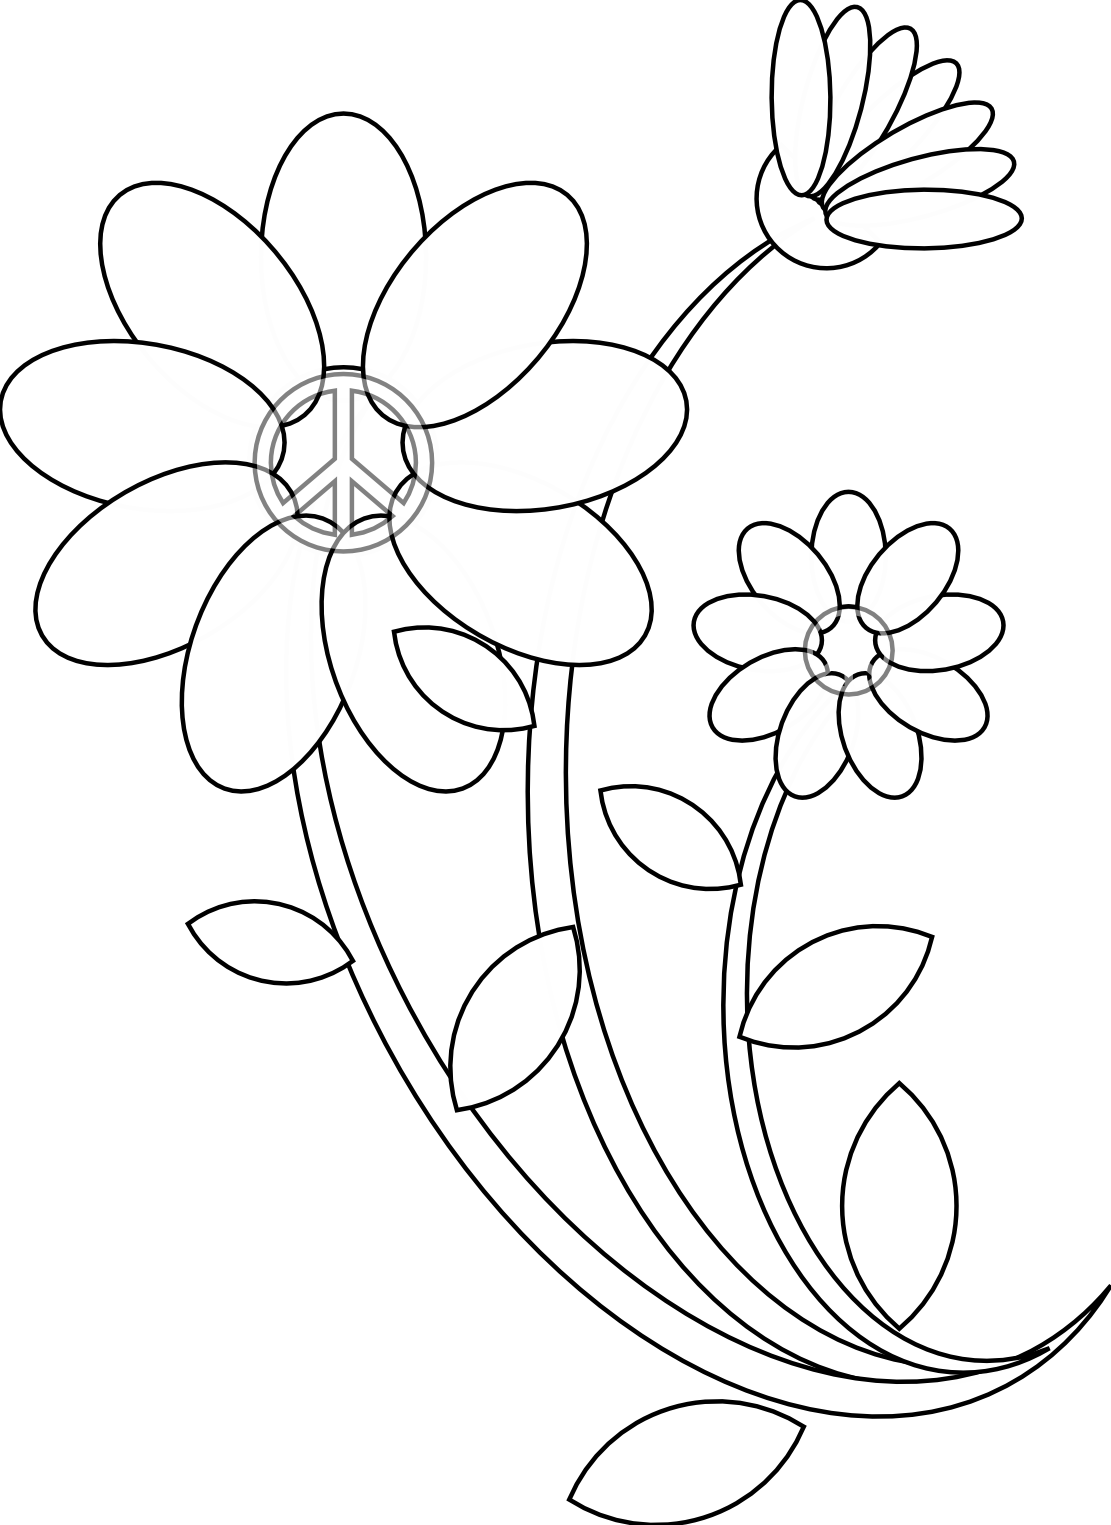 Line Art For Coloring : Images of line drawing flowers clipart best